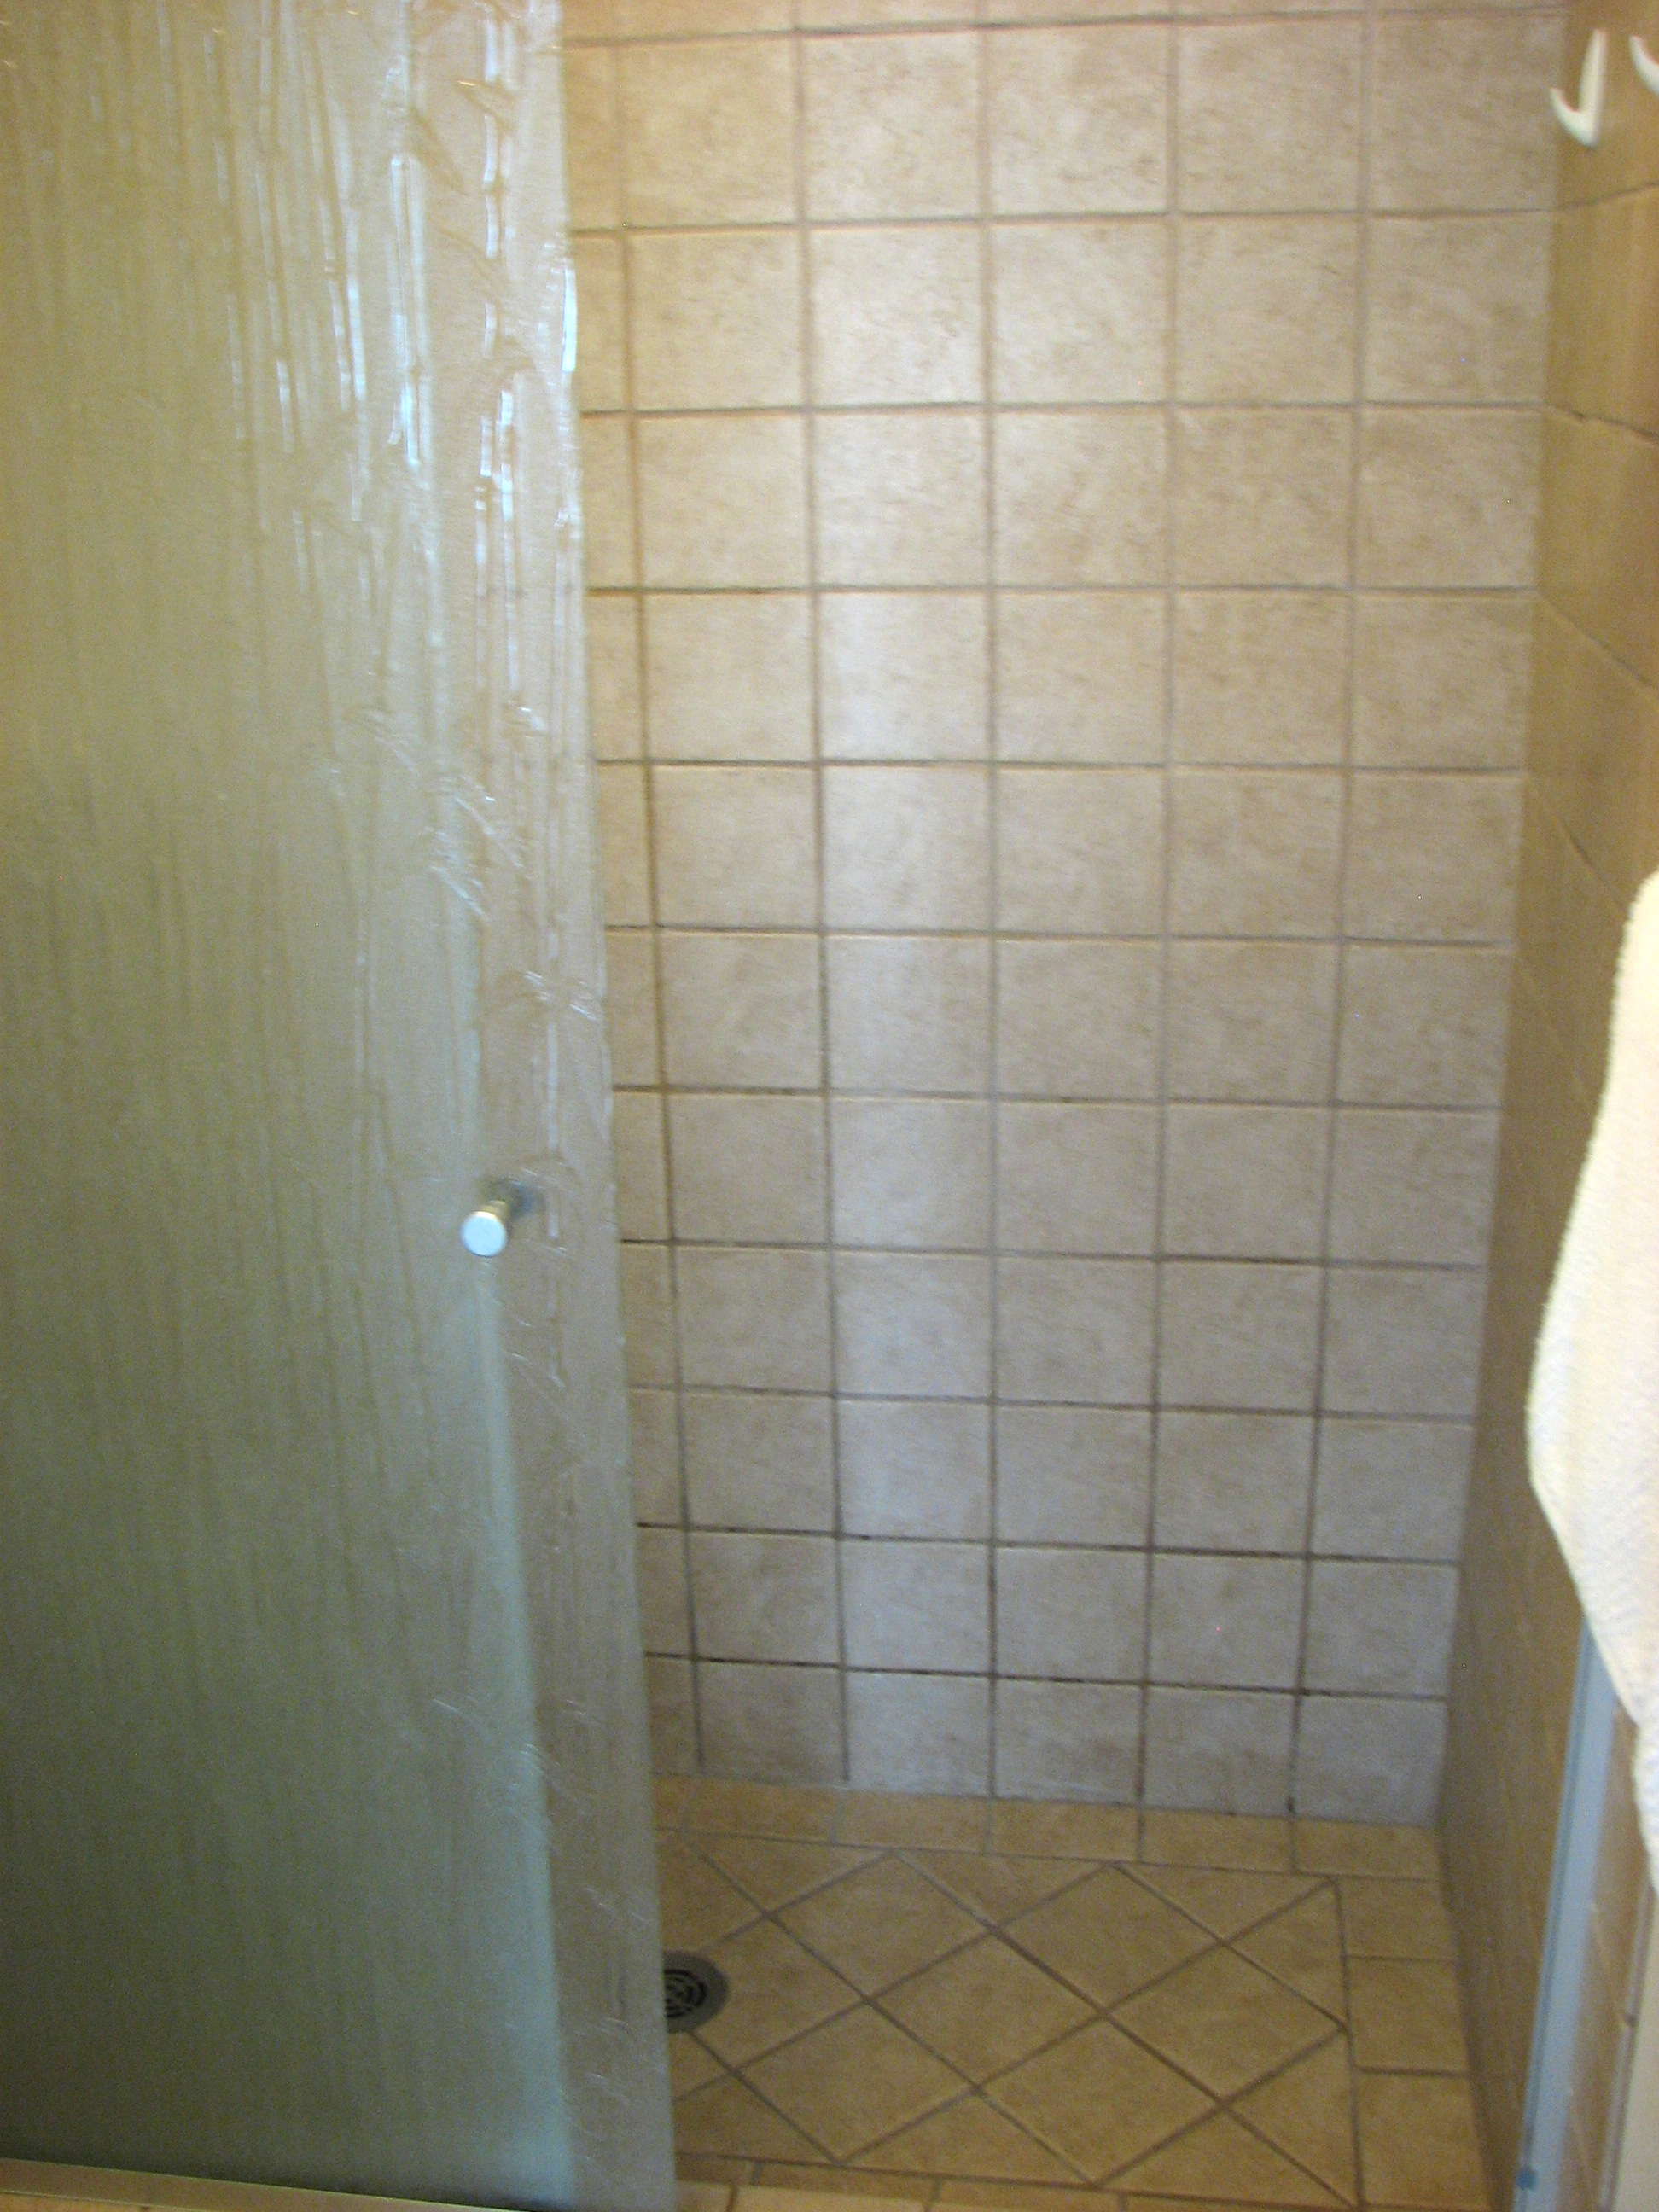 Walk in tile shower.